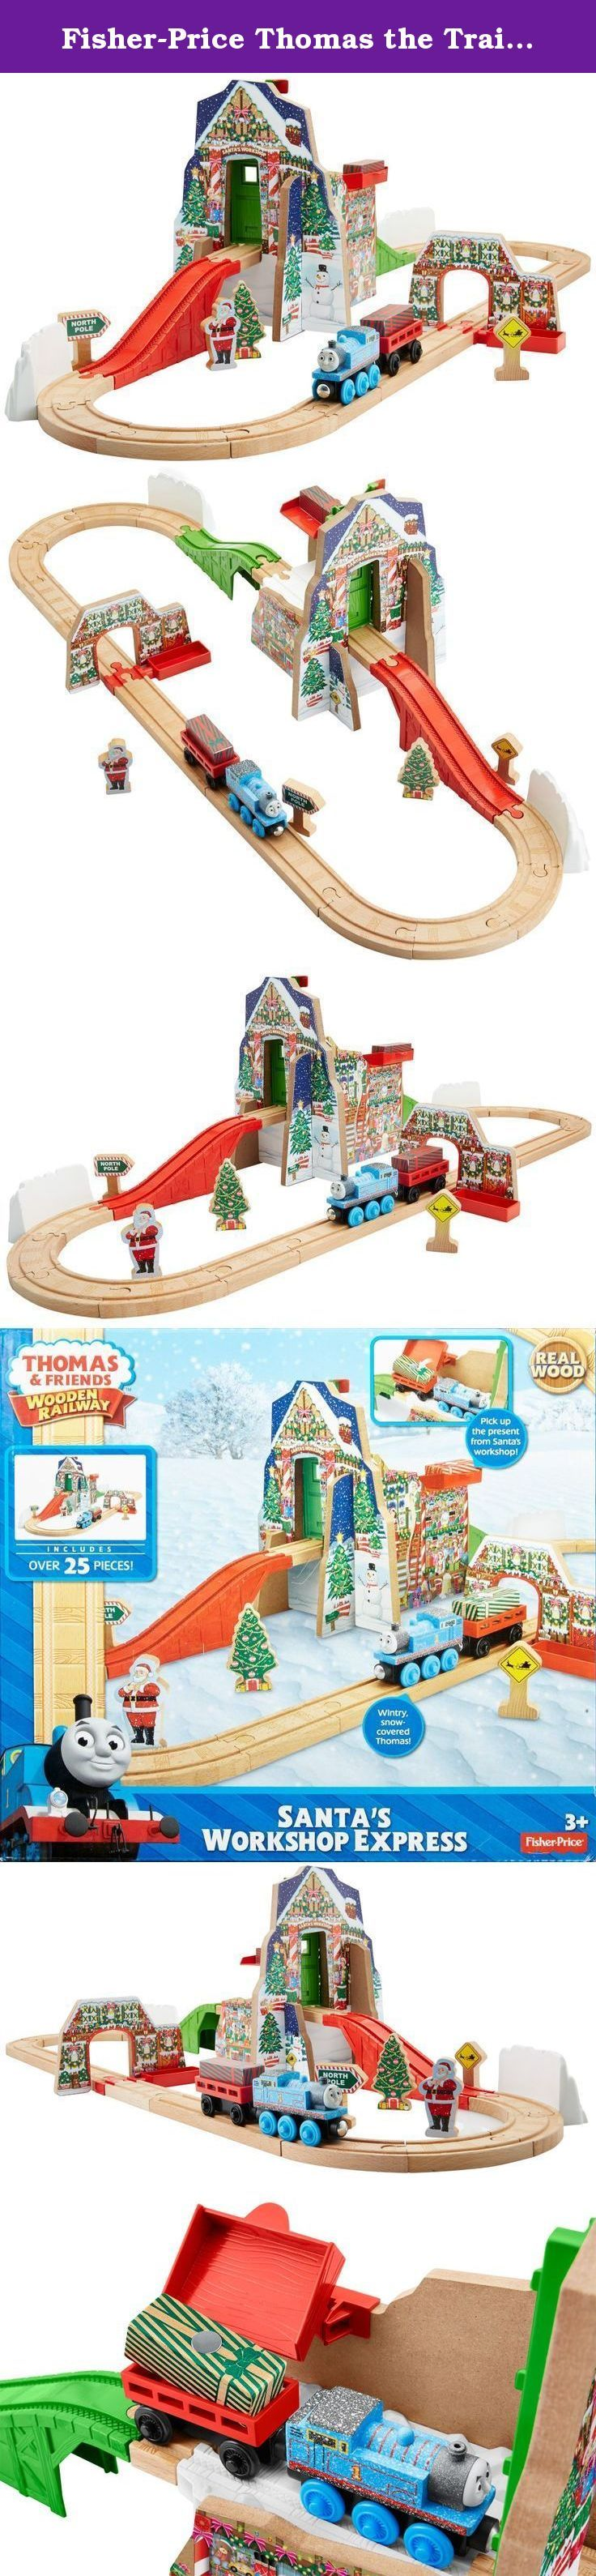 Fisher-Price Thomas the Train Wooden Railway Santa's Workshop Express [Amazon Exclusive]. With Thomas & Friends Wooden Railway Santa's Workshop Express, Thomas is helping Santa deliver presents from the north pole to the village below! Roll Thomas and his cargo car up to Santa's Workshop, load up a present and roll down to the village! Includes Thomas with special snow deco, a Christmas tree, Sir Topham Hatt as Santa Clause, Santa crossing sign, 2 presents, a cargo car, & North Pole sign.